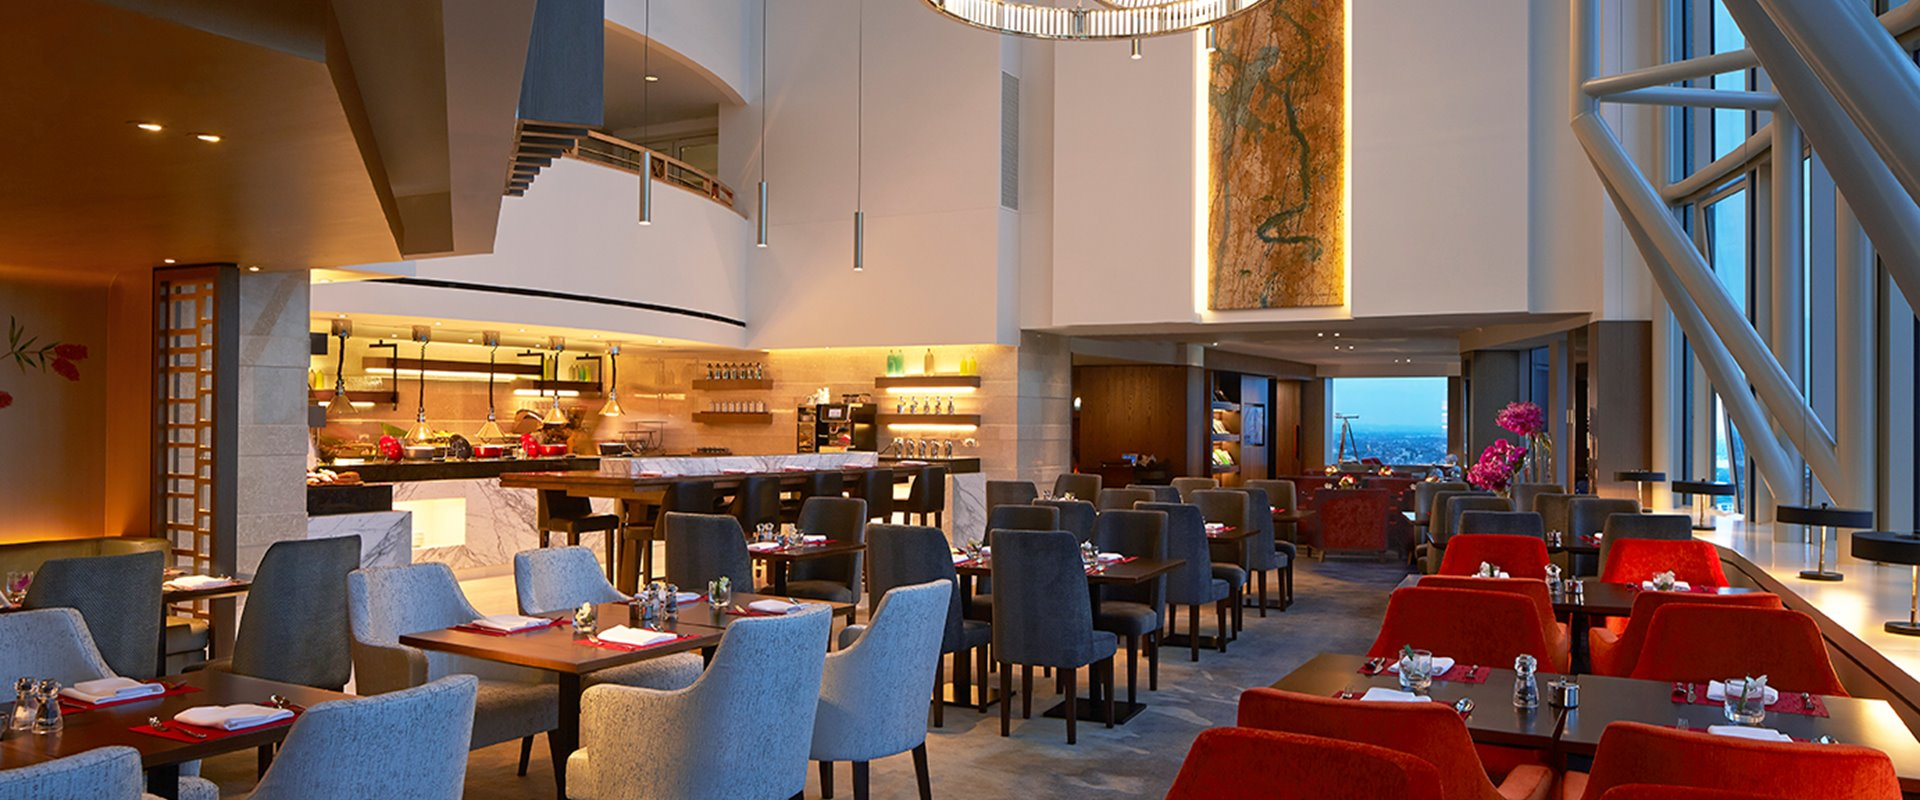 Shangri-La Hotel Sydney | Conference Venues Sydney | Conference Venues New South Wales